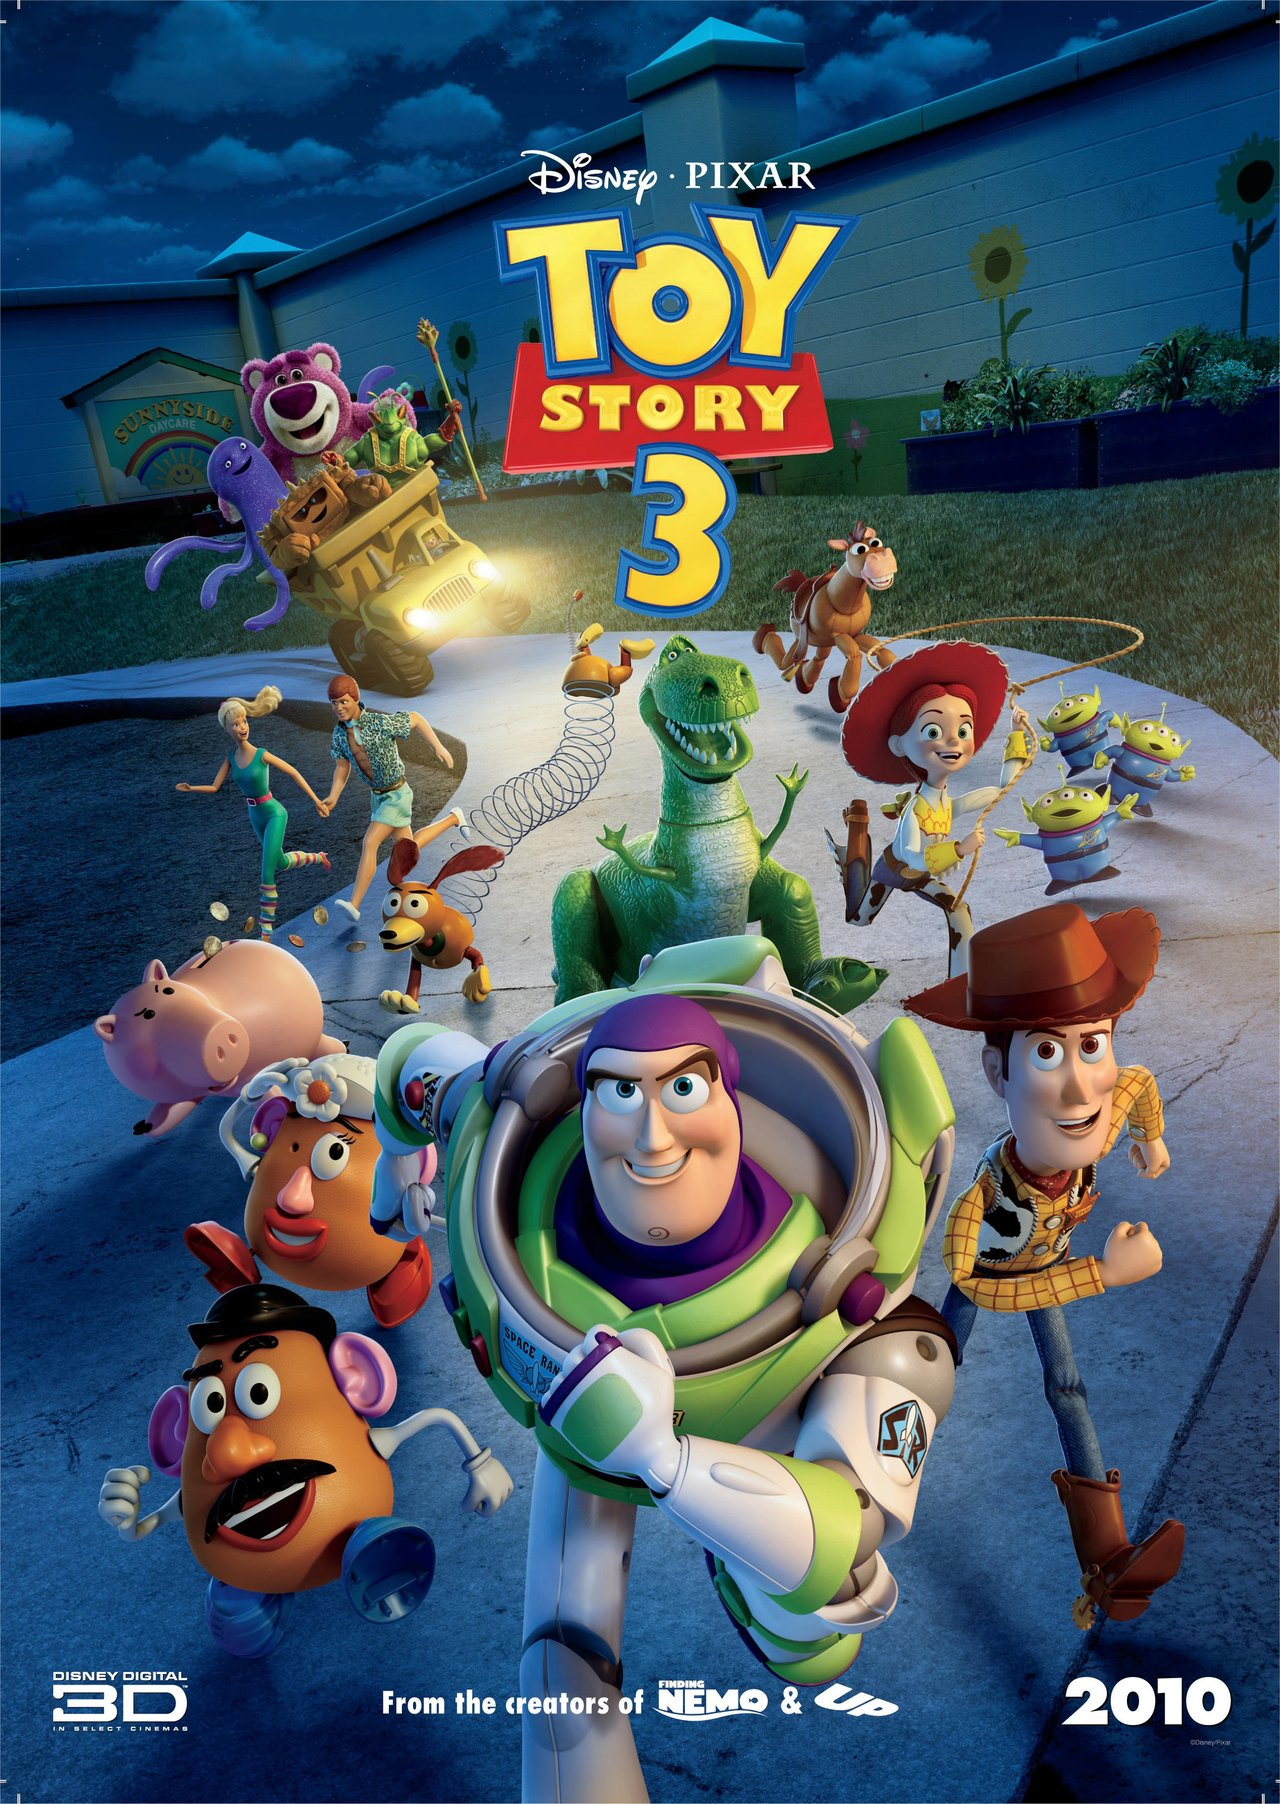 toy story and toy story 3 image